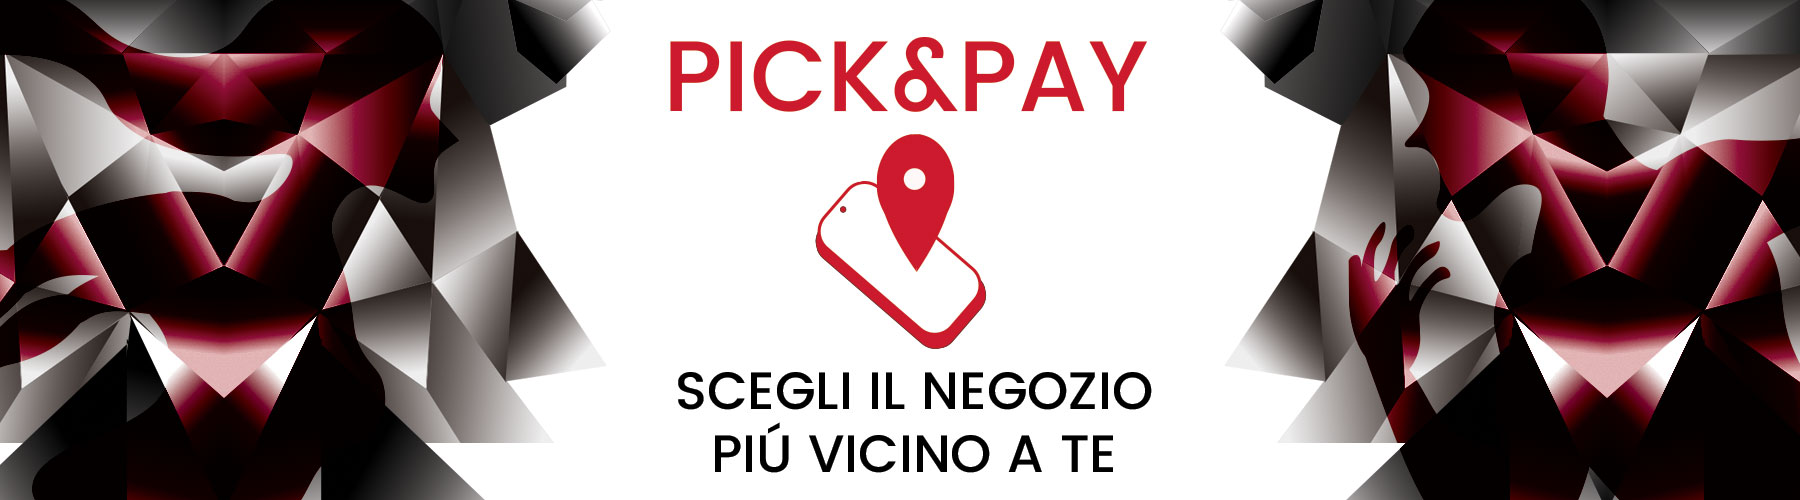 pickpay